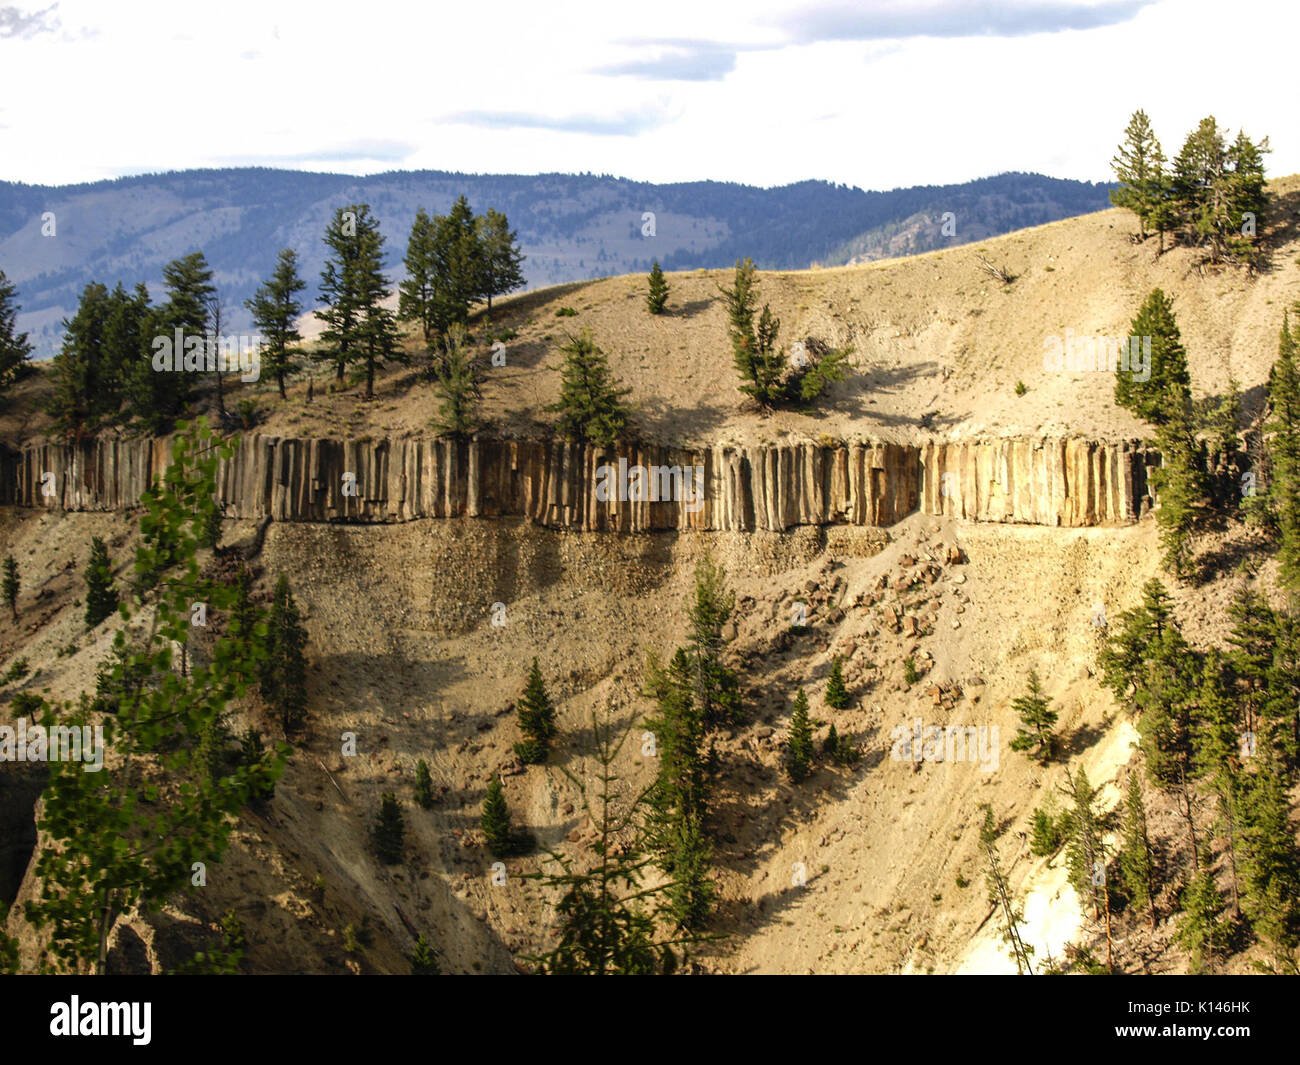 An Igneous Sill Intrusion in Yellowstone National Park Wyoming USA - Stock Image